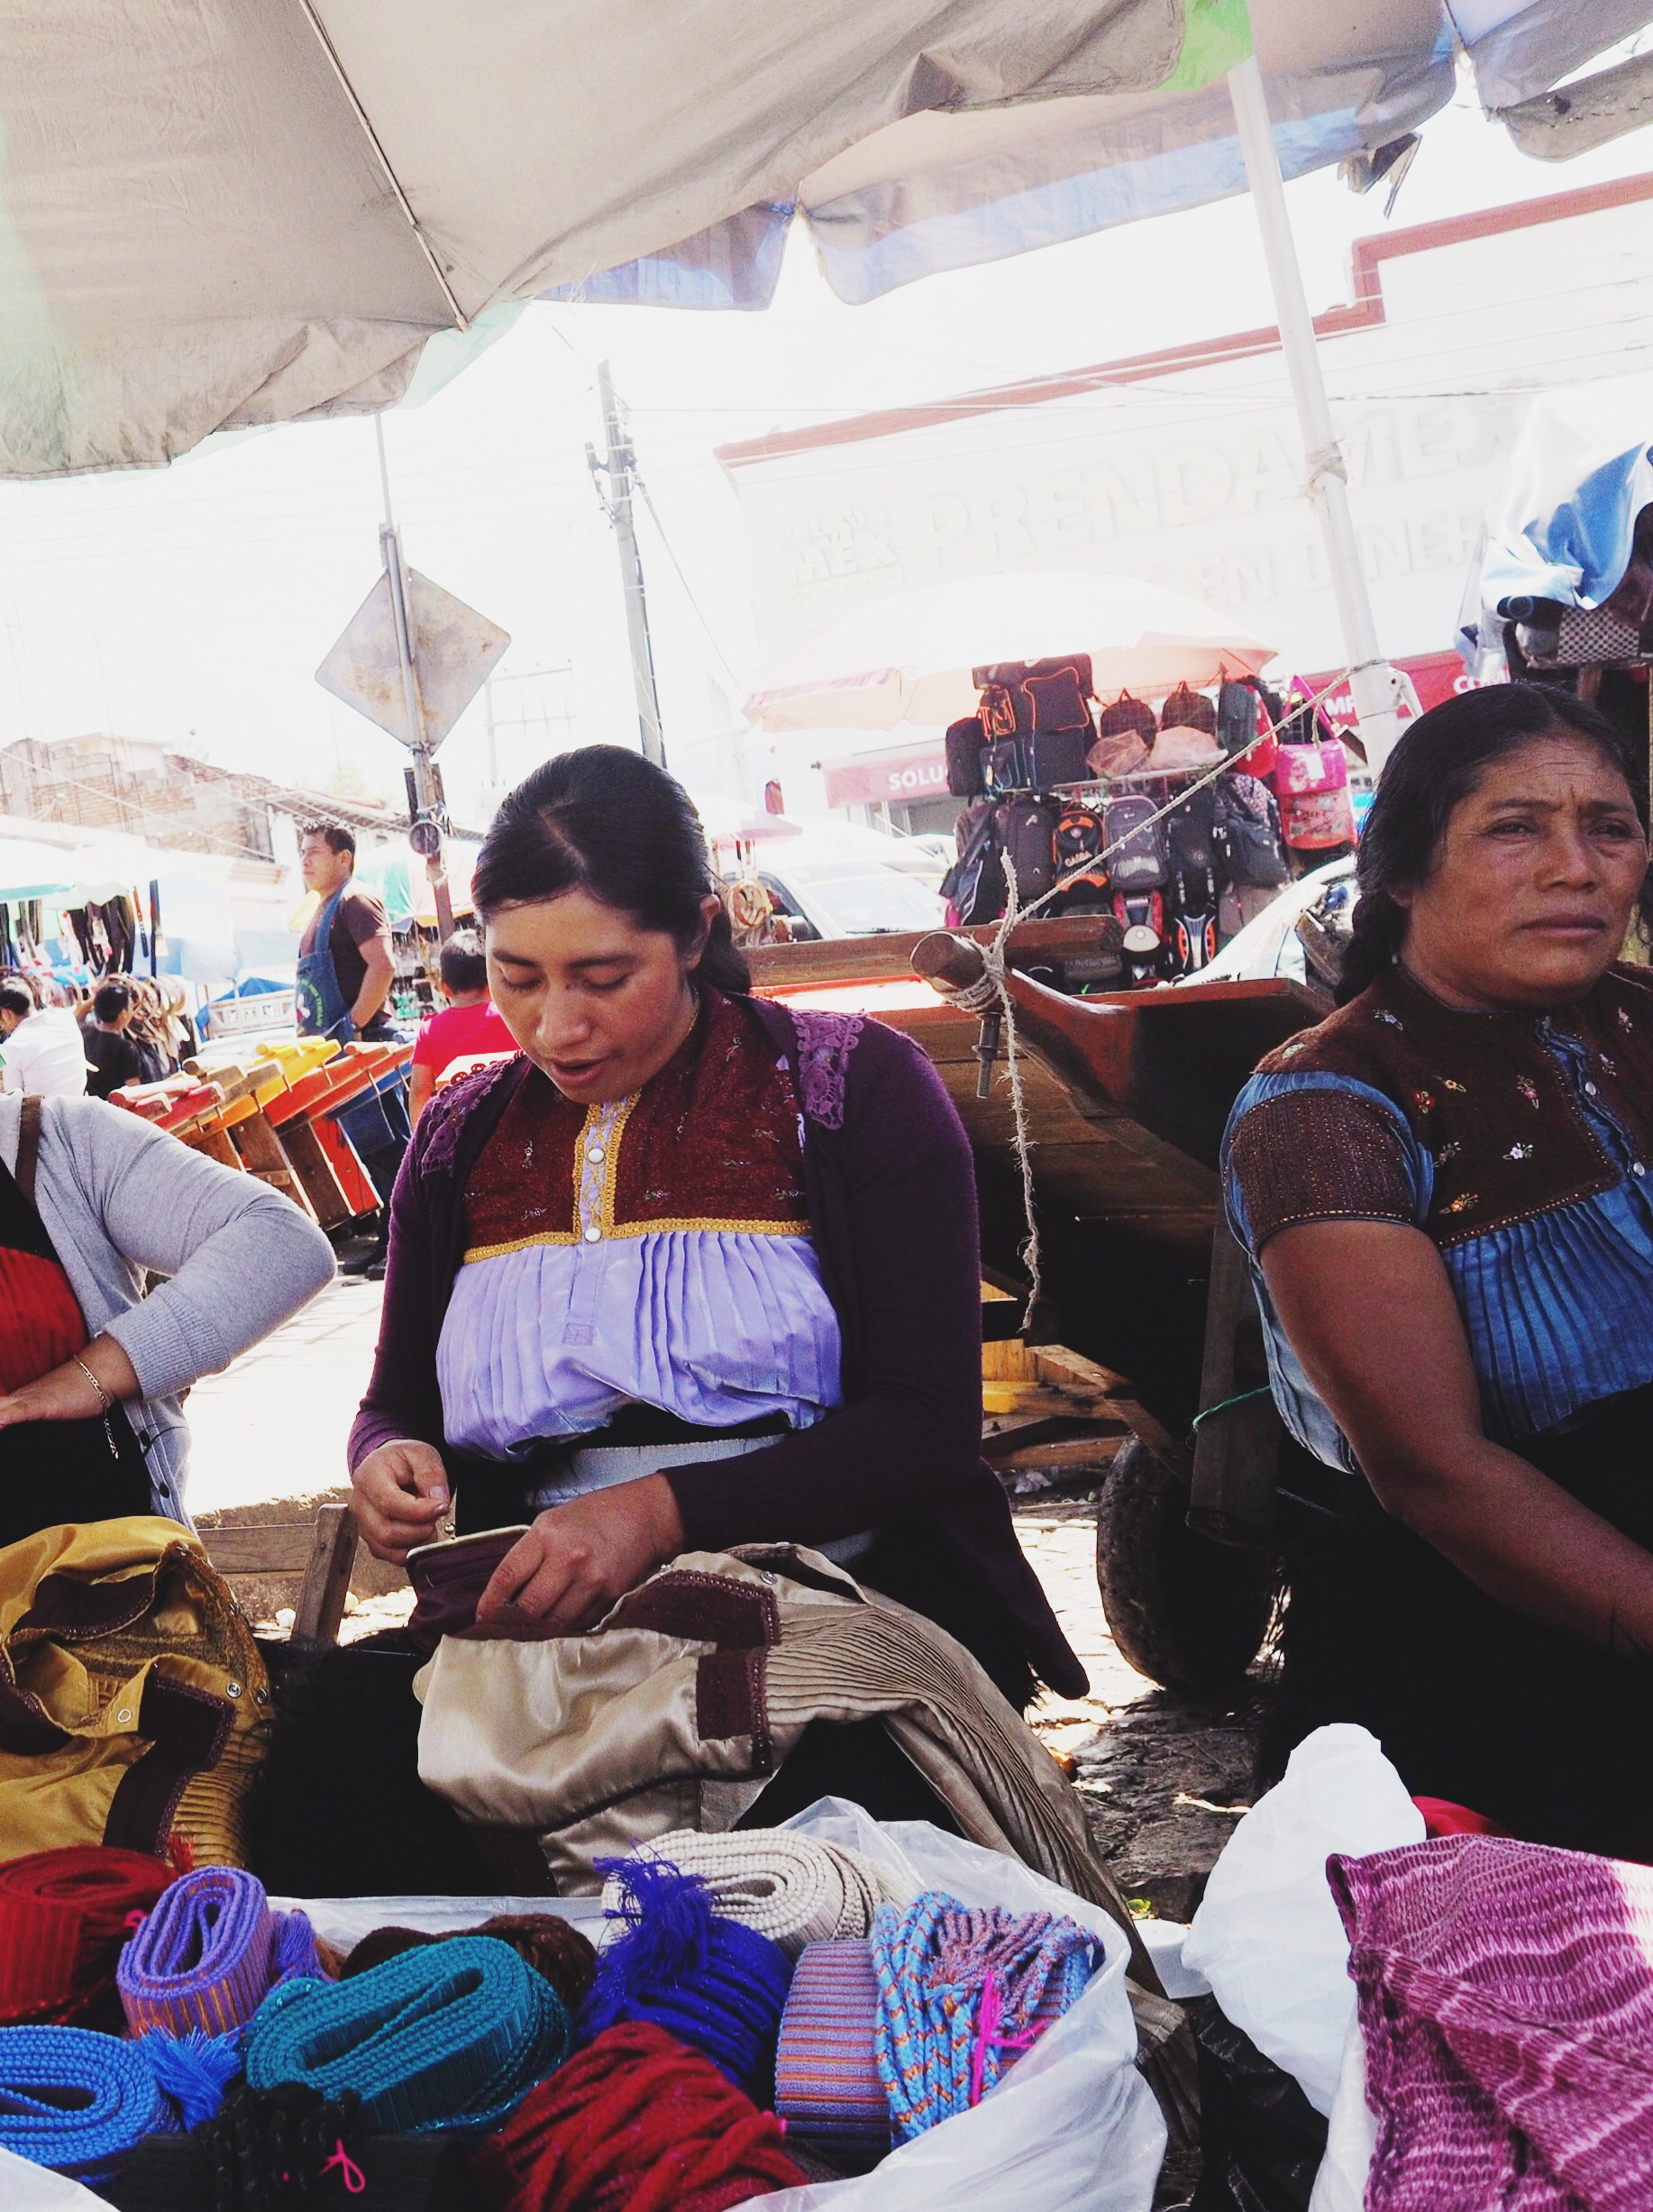 Women selling hand-made belts at the market